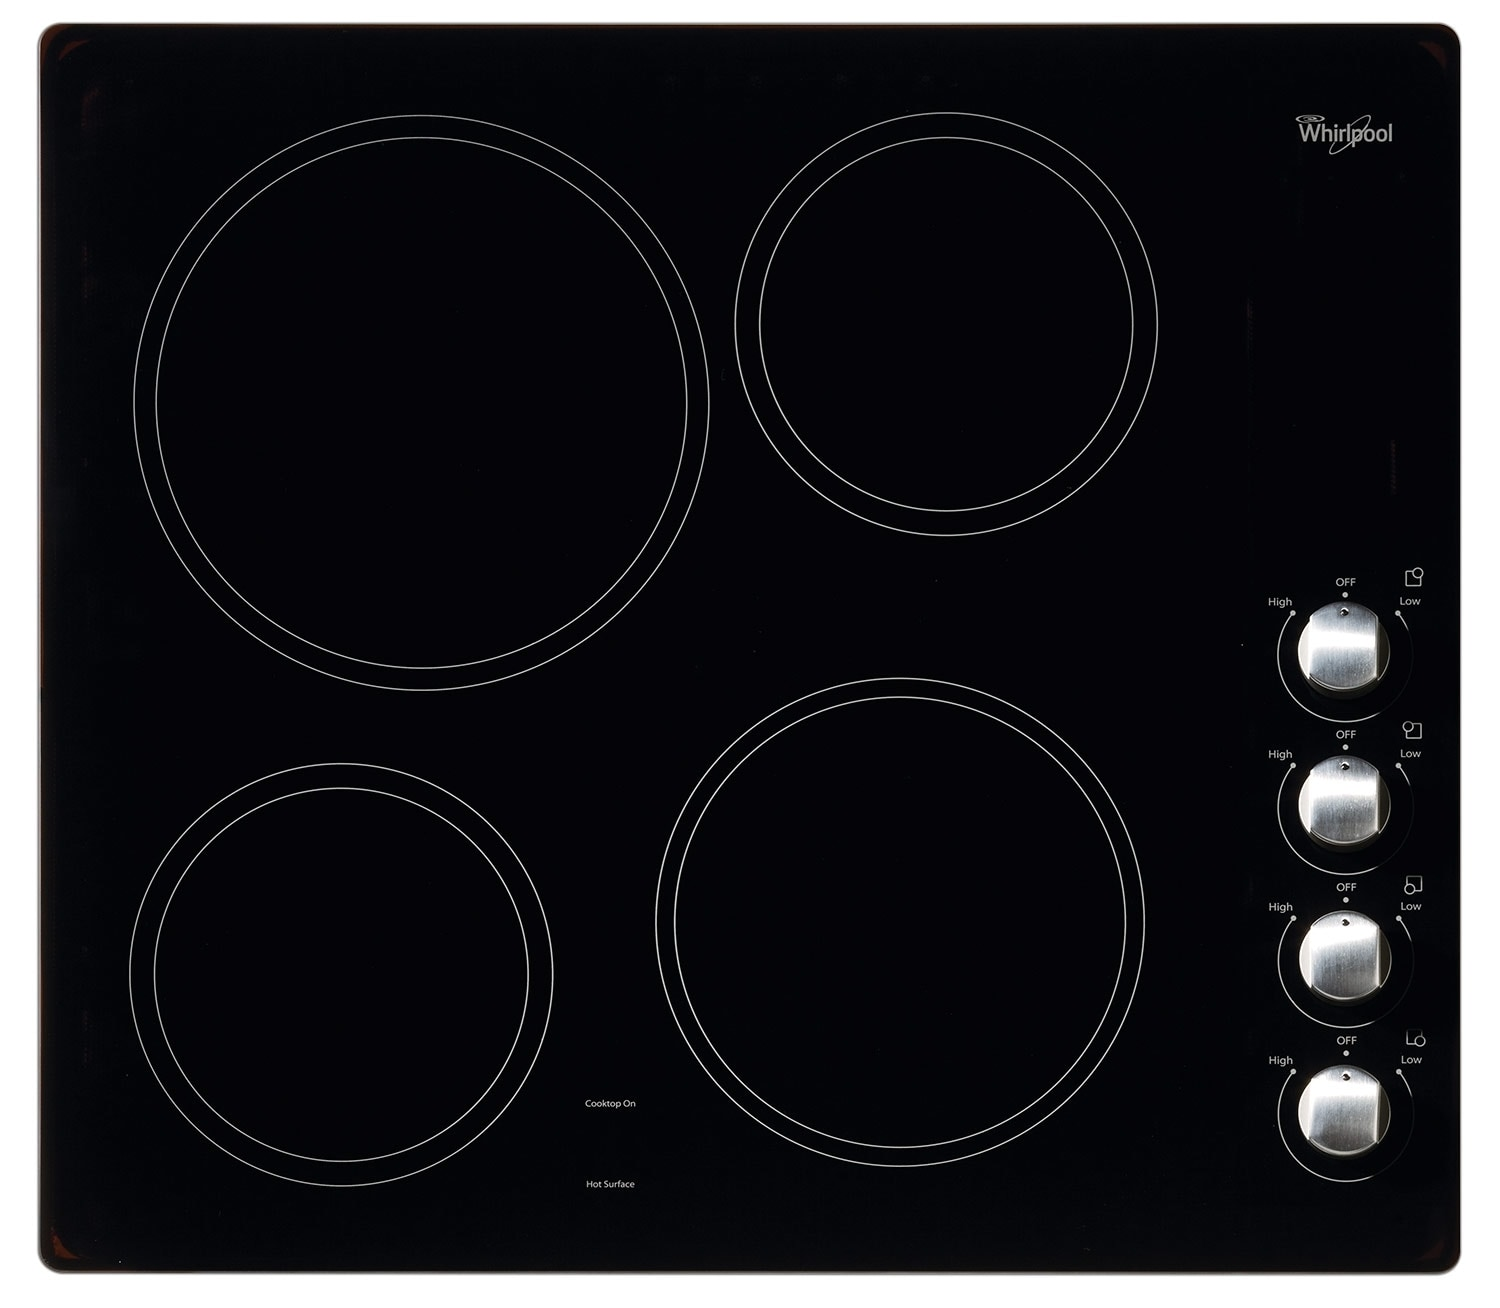 Whirlpool Electric Cooktop WCE52424AB